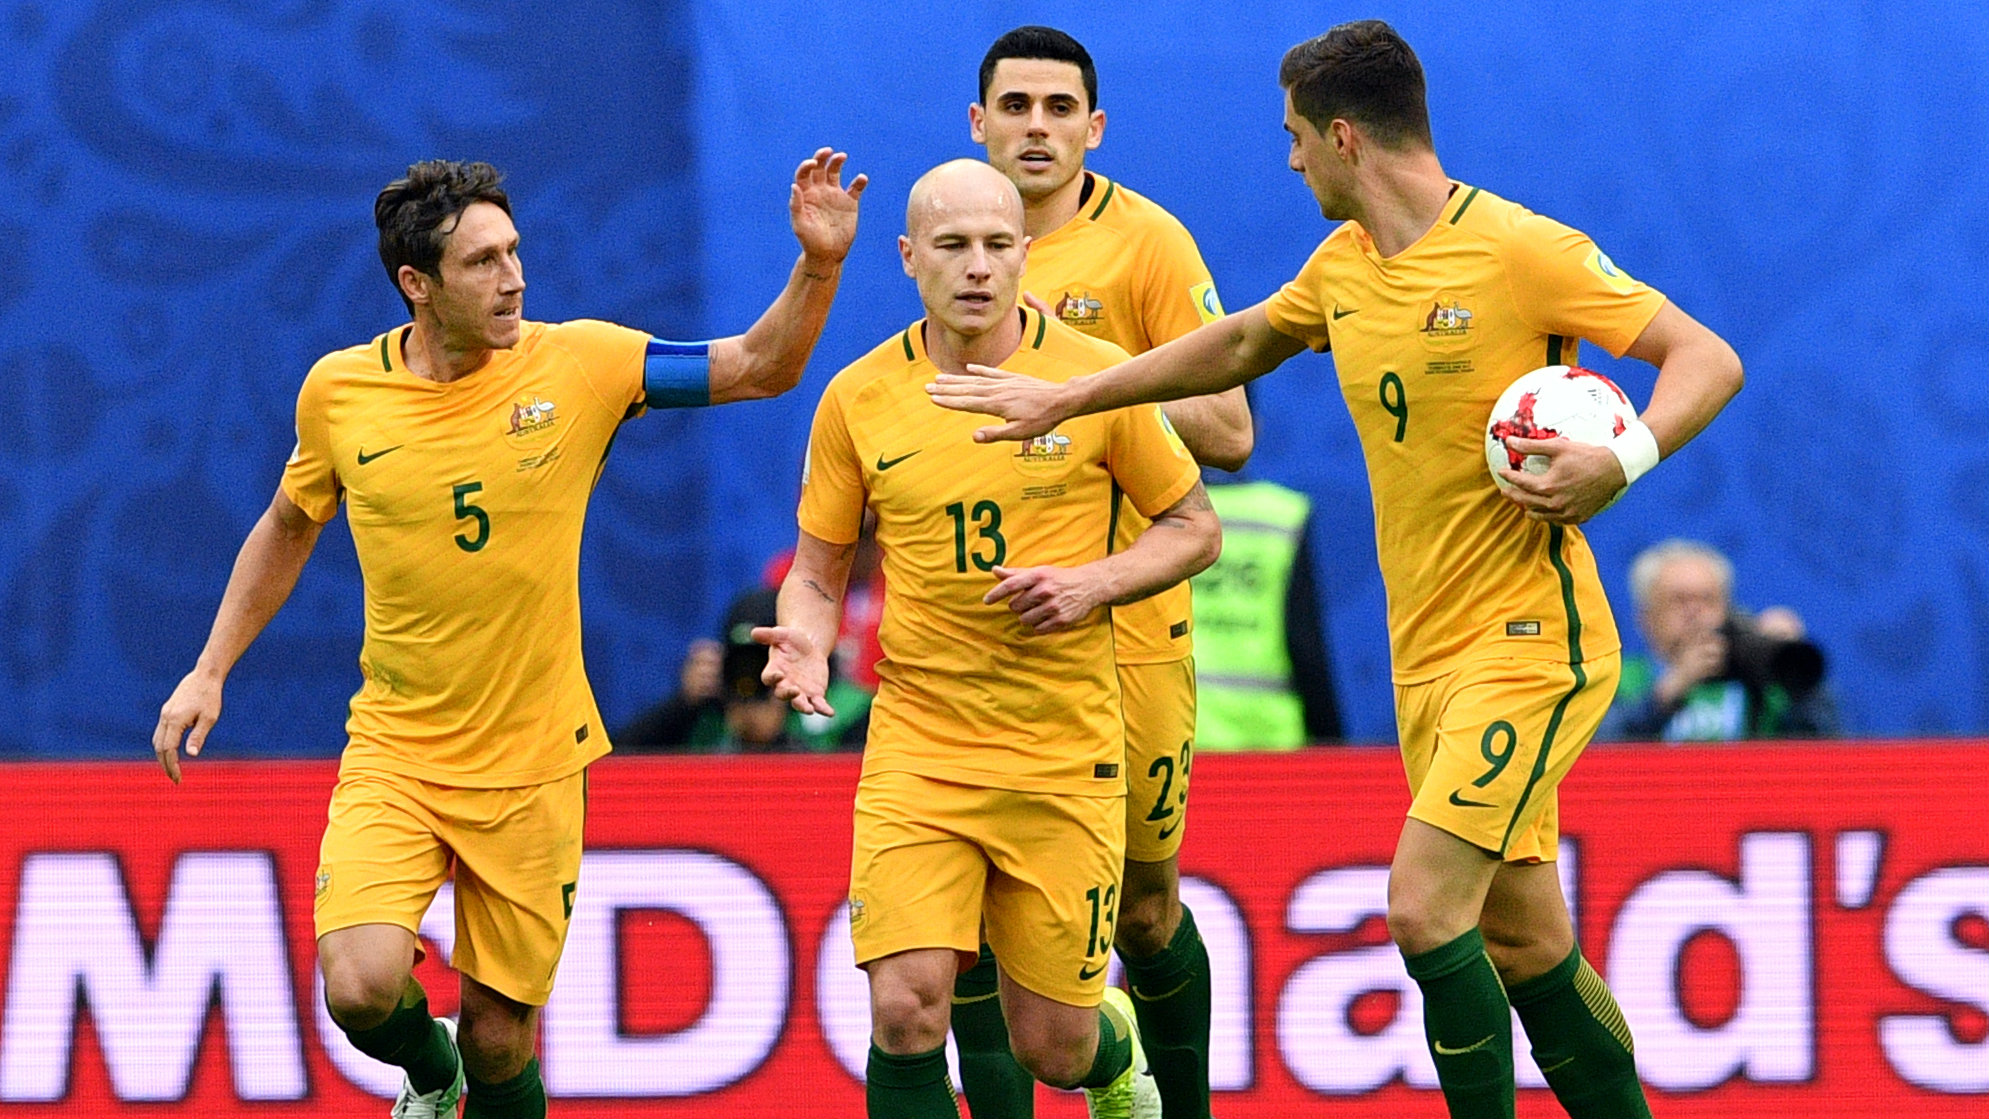 Ange Postecoglou has named a 23-man squad for the Caltex Socceroos' play-off against Syria.